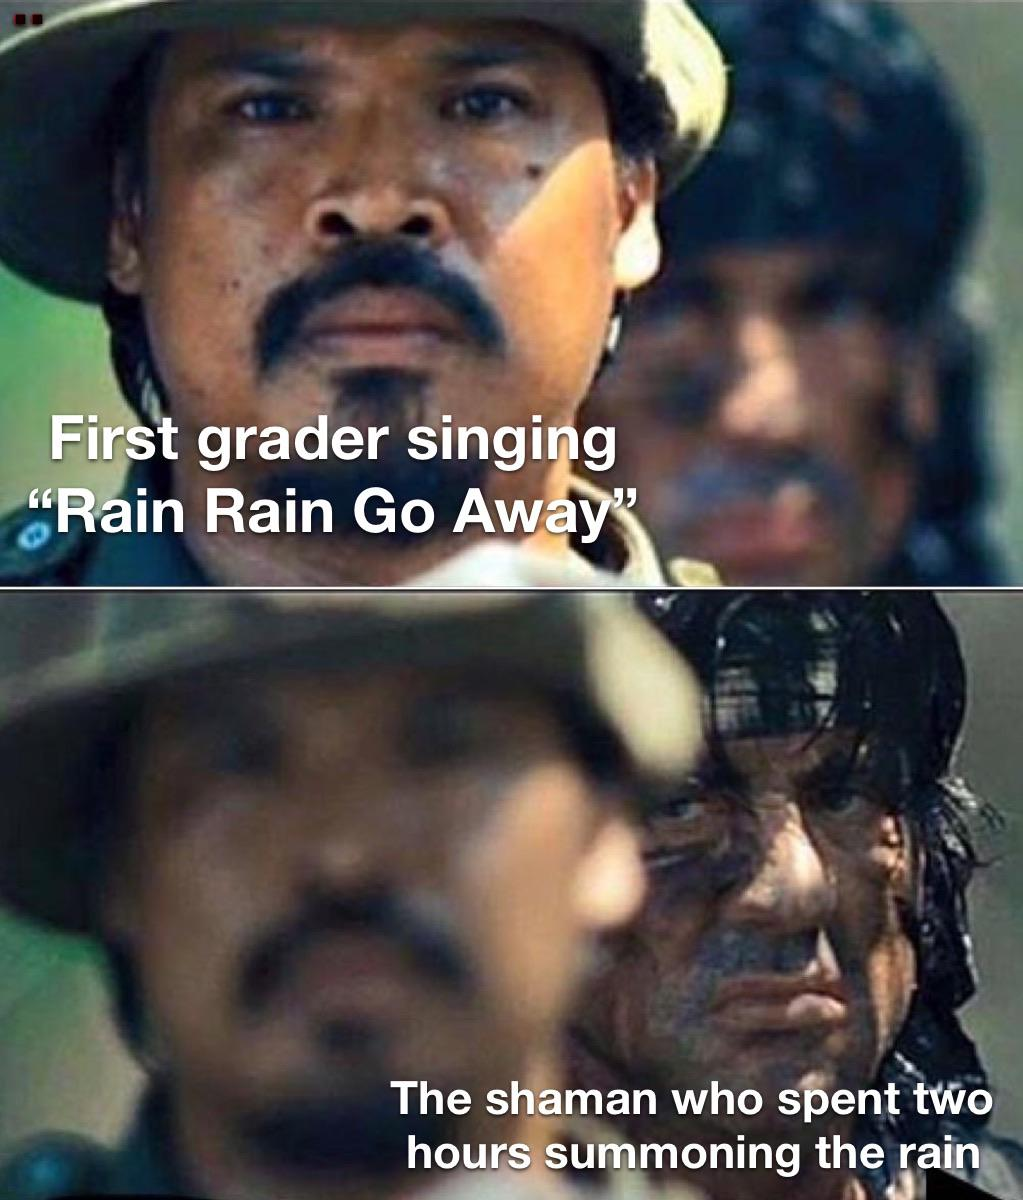 First grader vs shaman about the rain